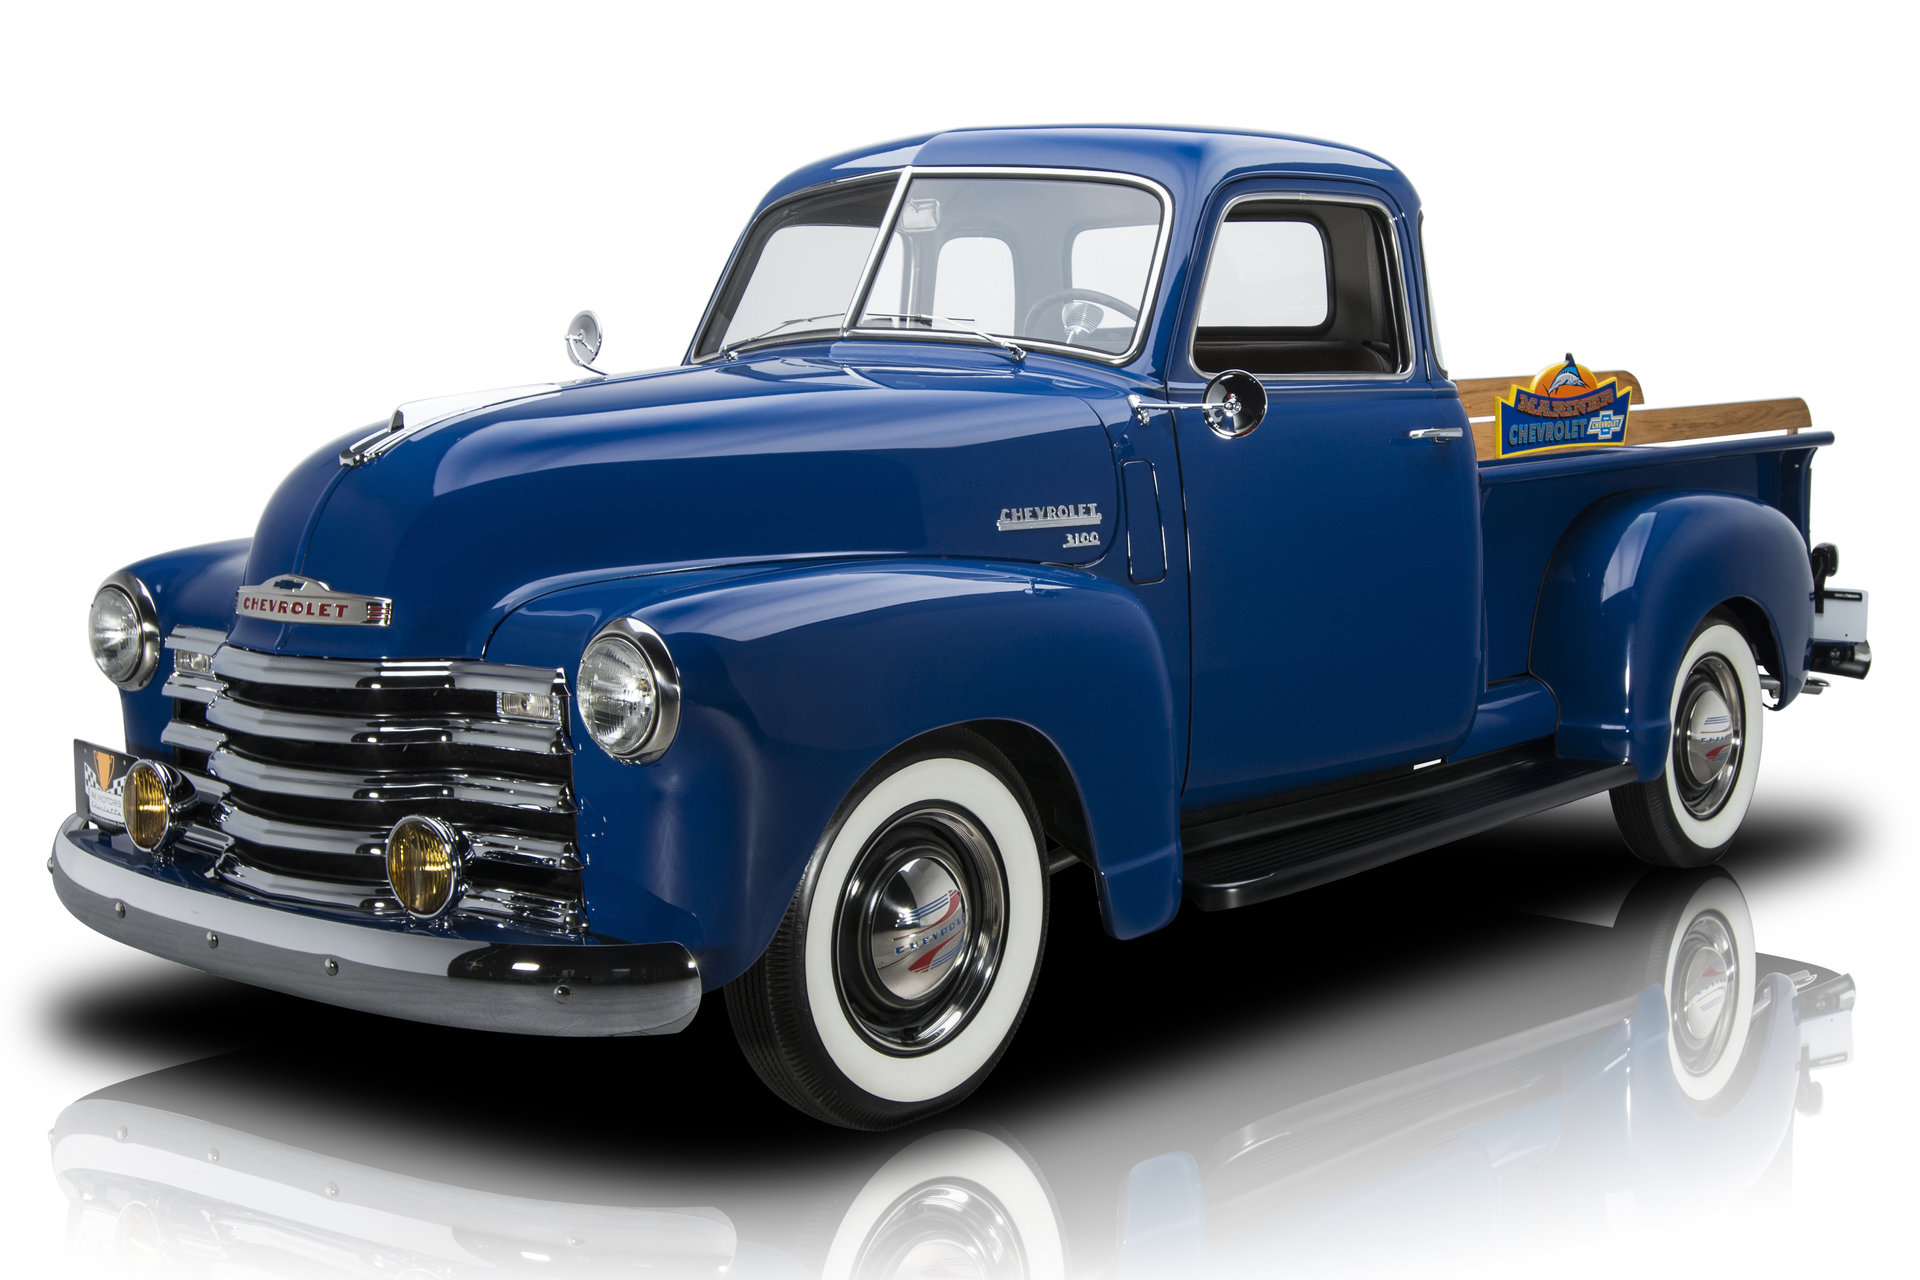 136092 1949 Chevrolet 3100 Rk Motors Classic And Performance Cars Chevy Pickup Truck For Sale